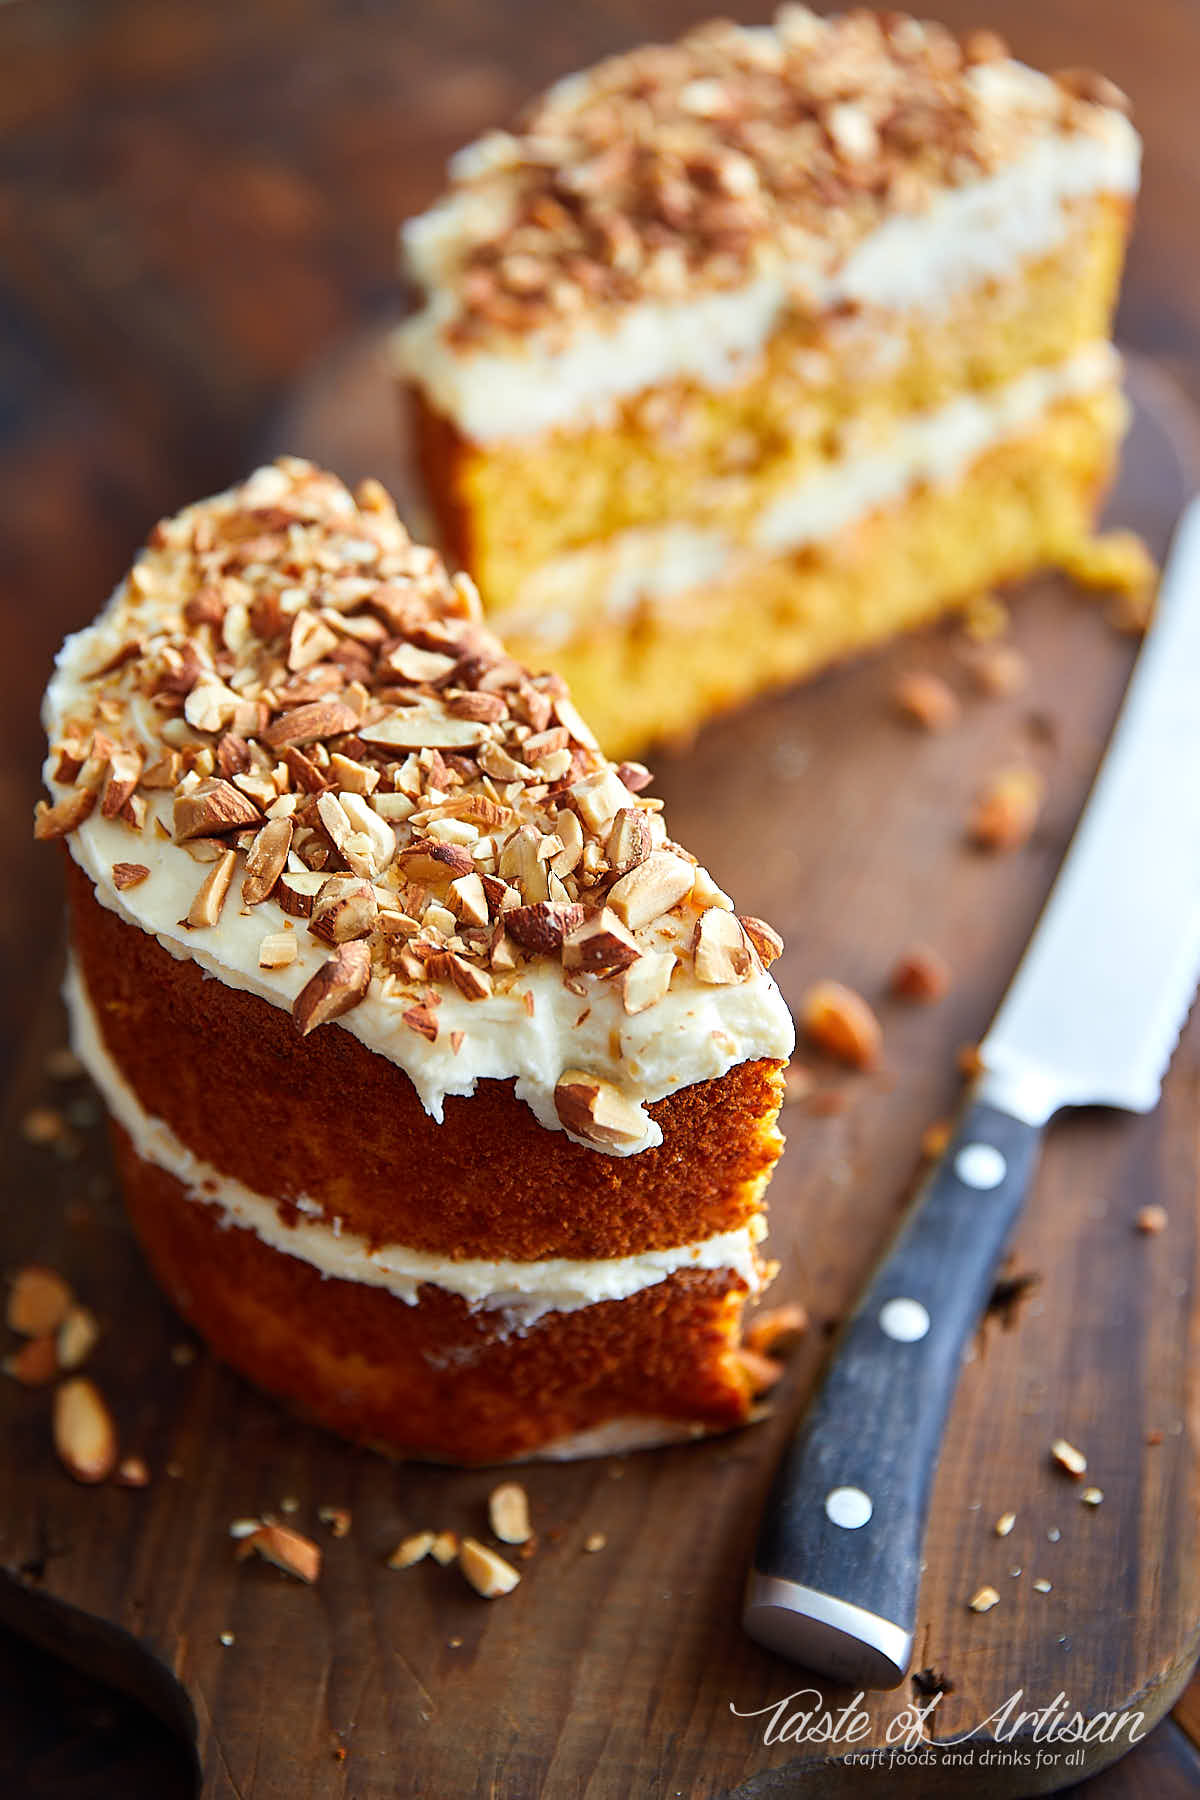 Gluten free carrot cake with cream cheese frosting cut in half.